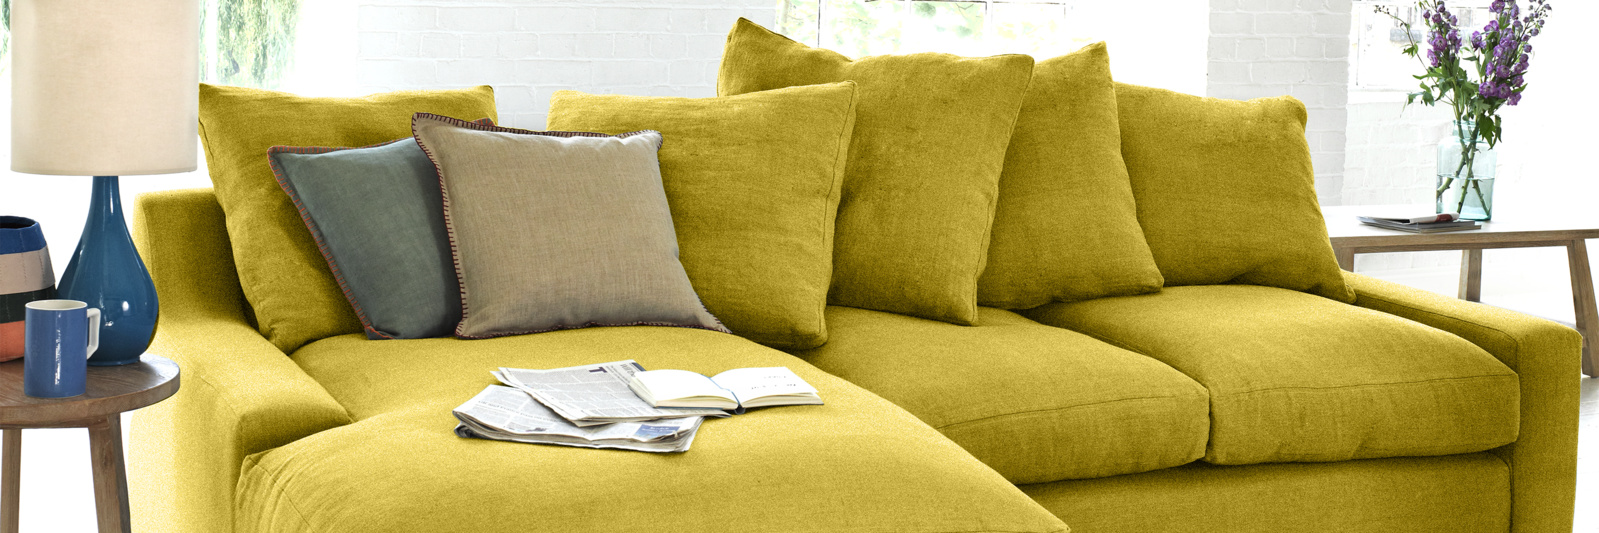 Cloud chaise sofa in yellow fabric